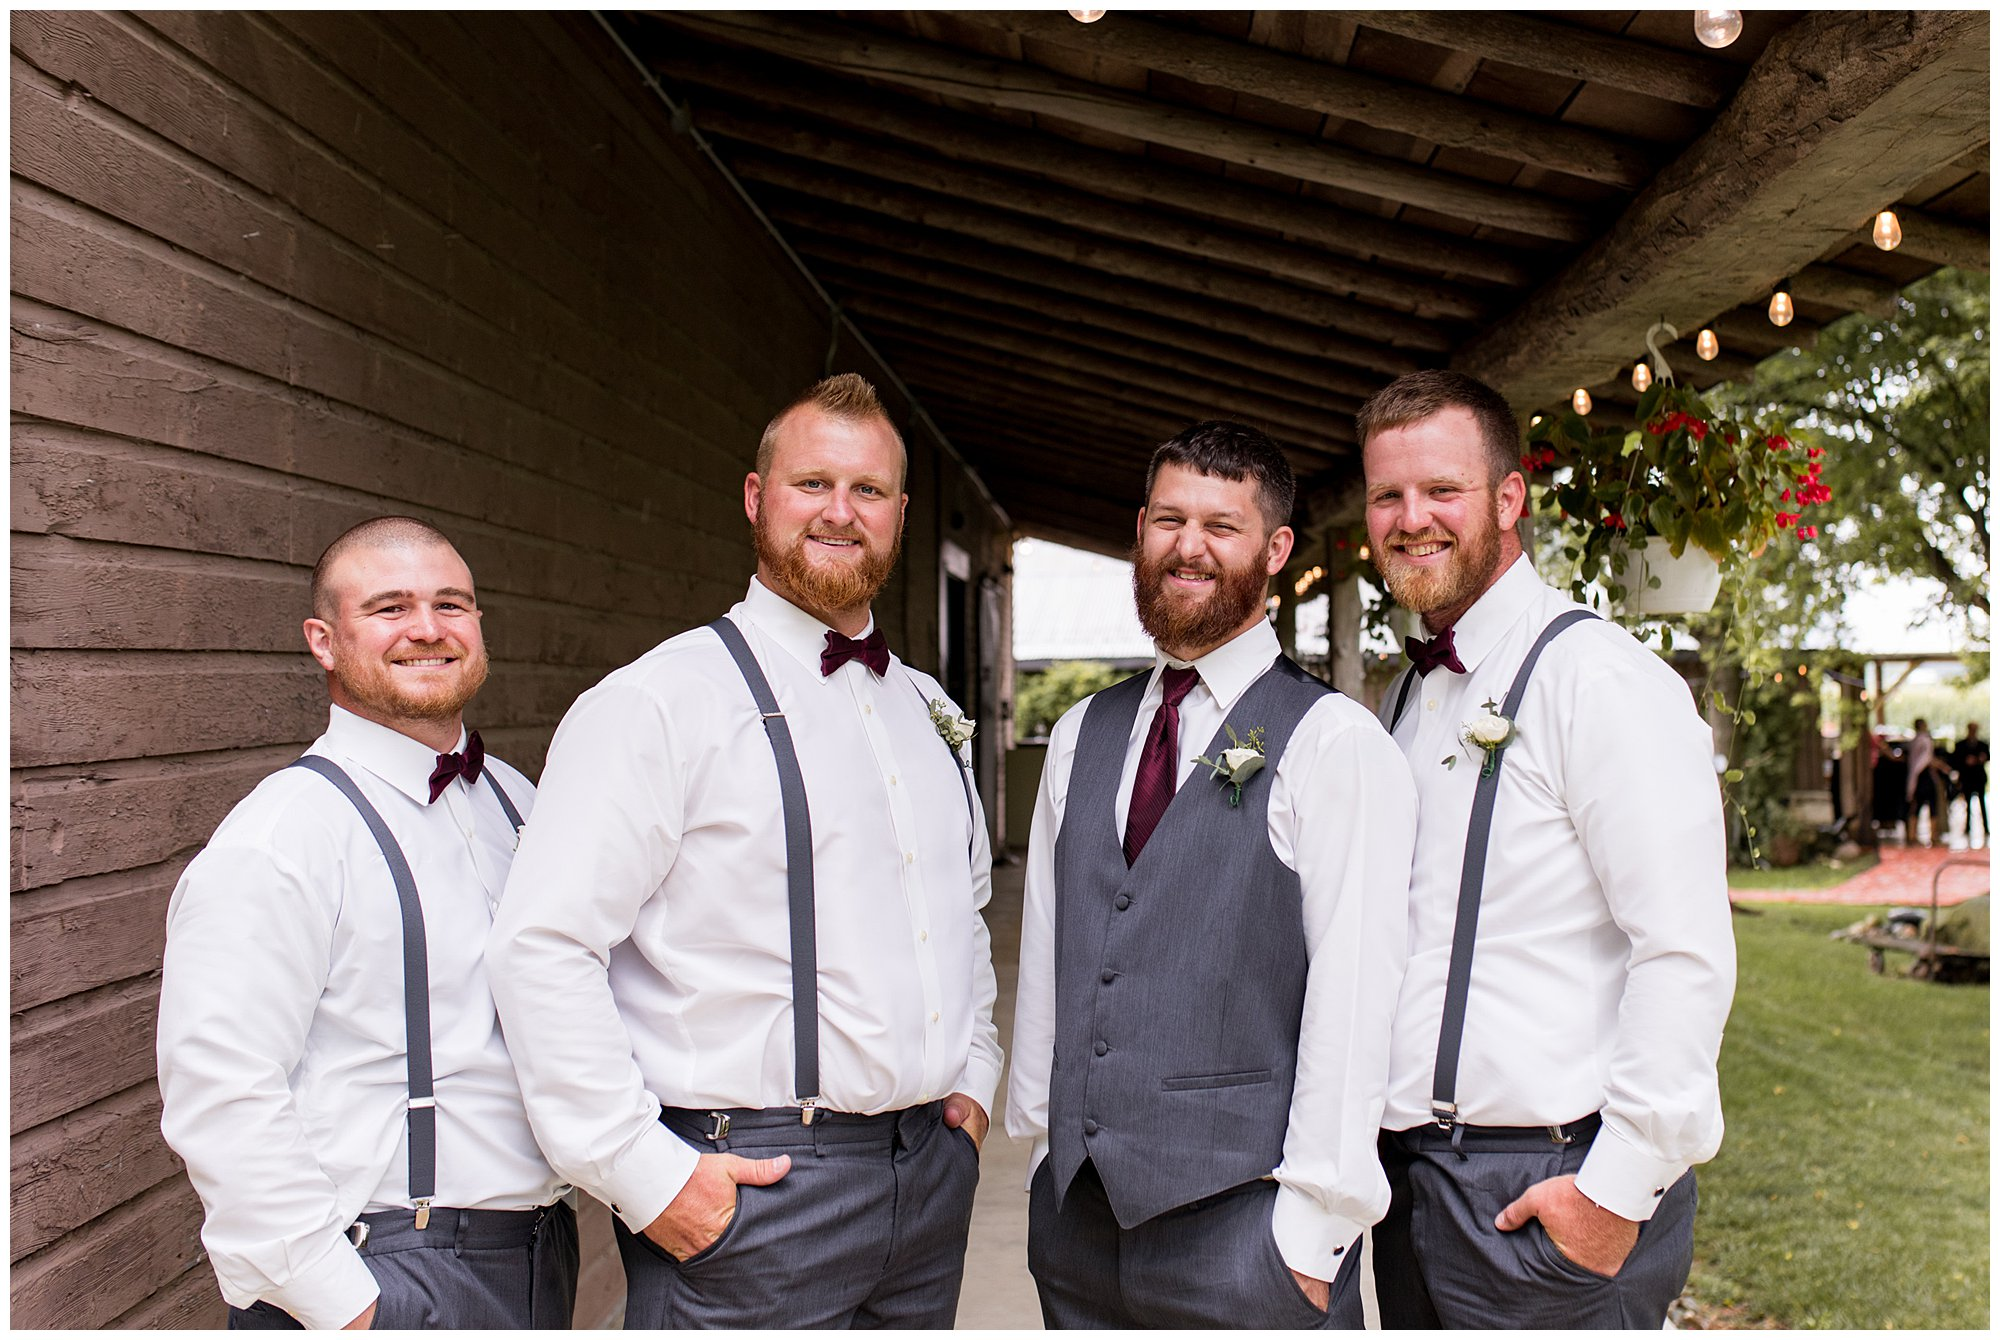 groom and groomsmen photos at The Old Mill Village